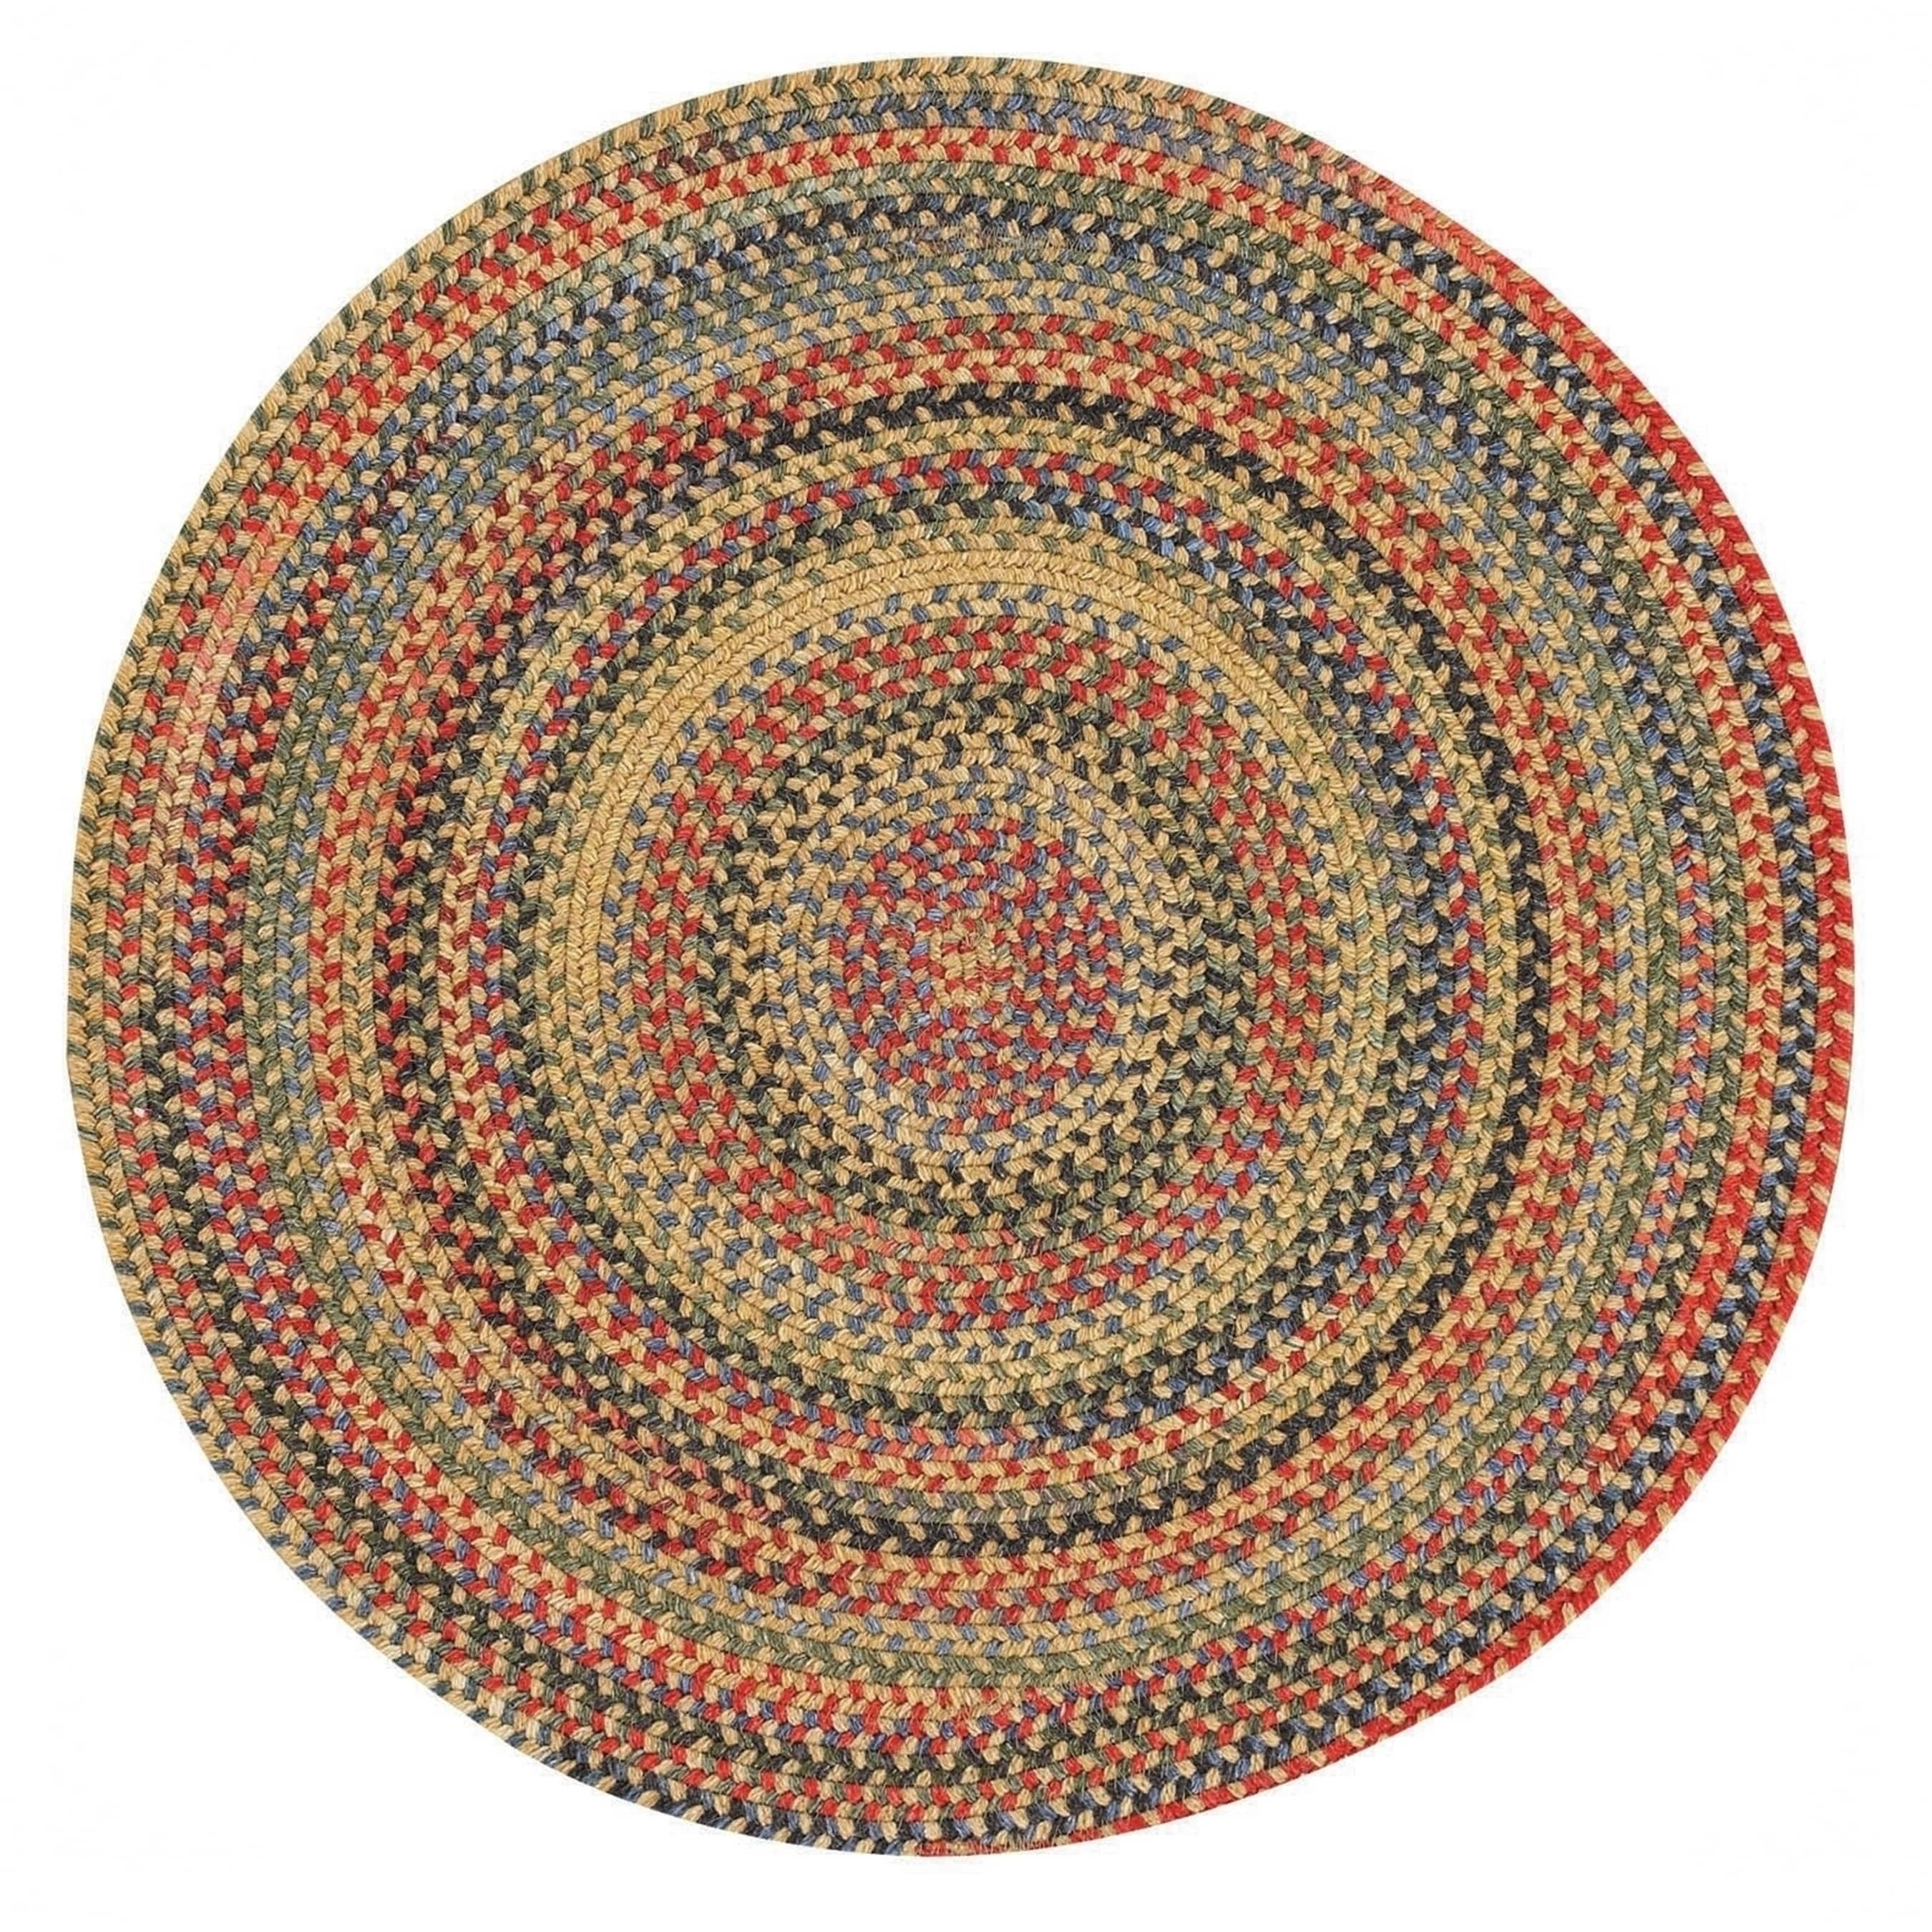 "Capel Rugs Songbird Gold Round Braided Rugs 9 6"" x 9 6"" Size 9 x"